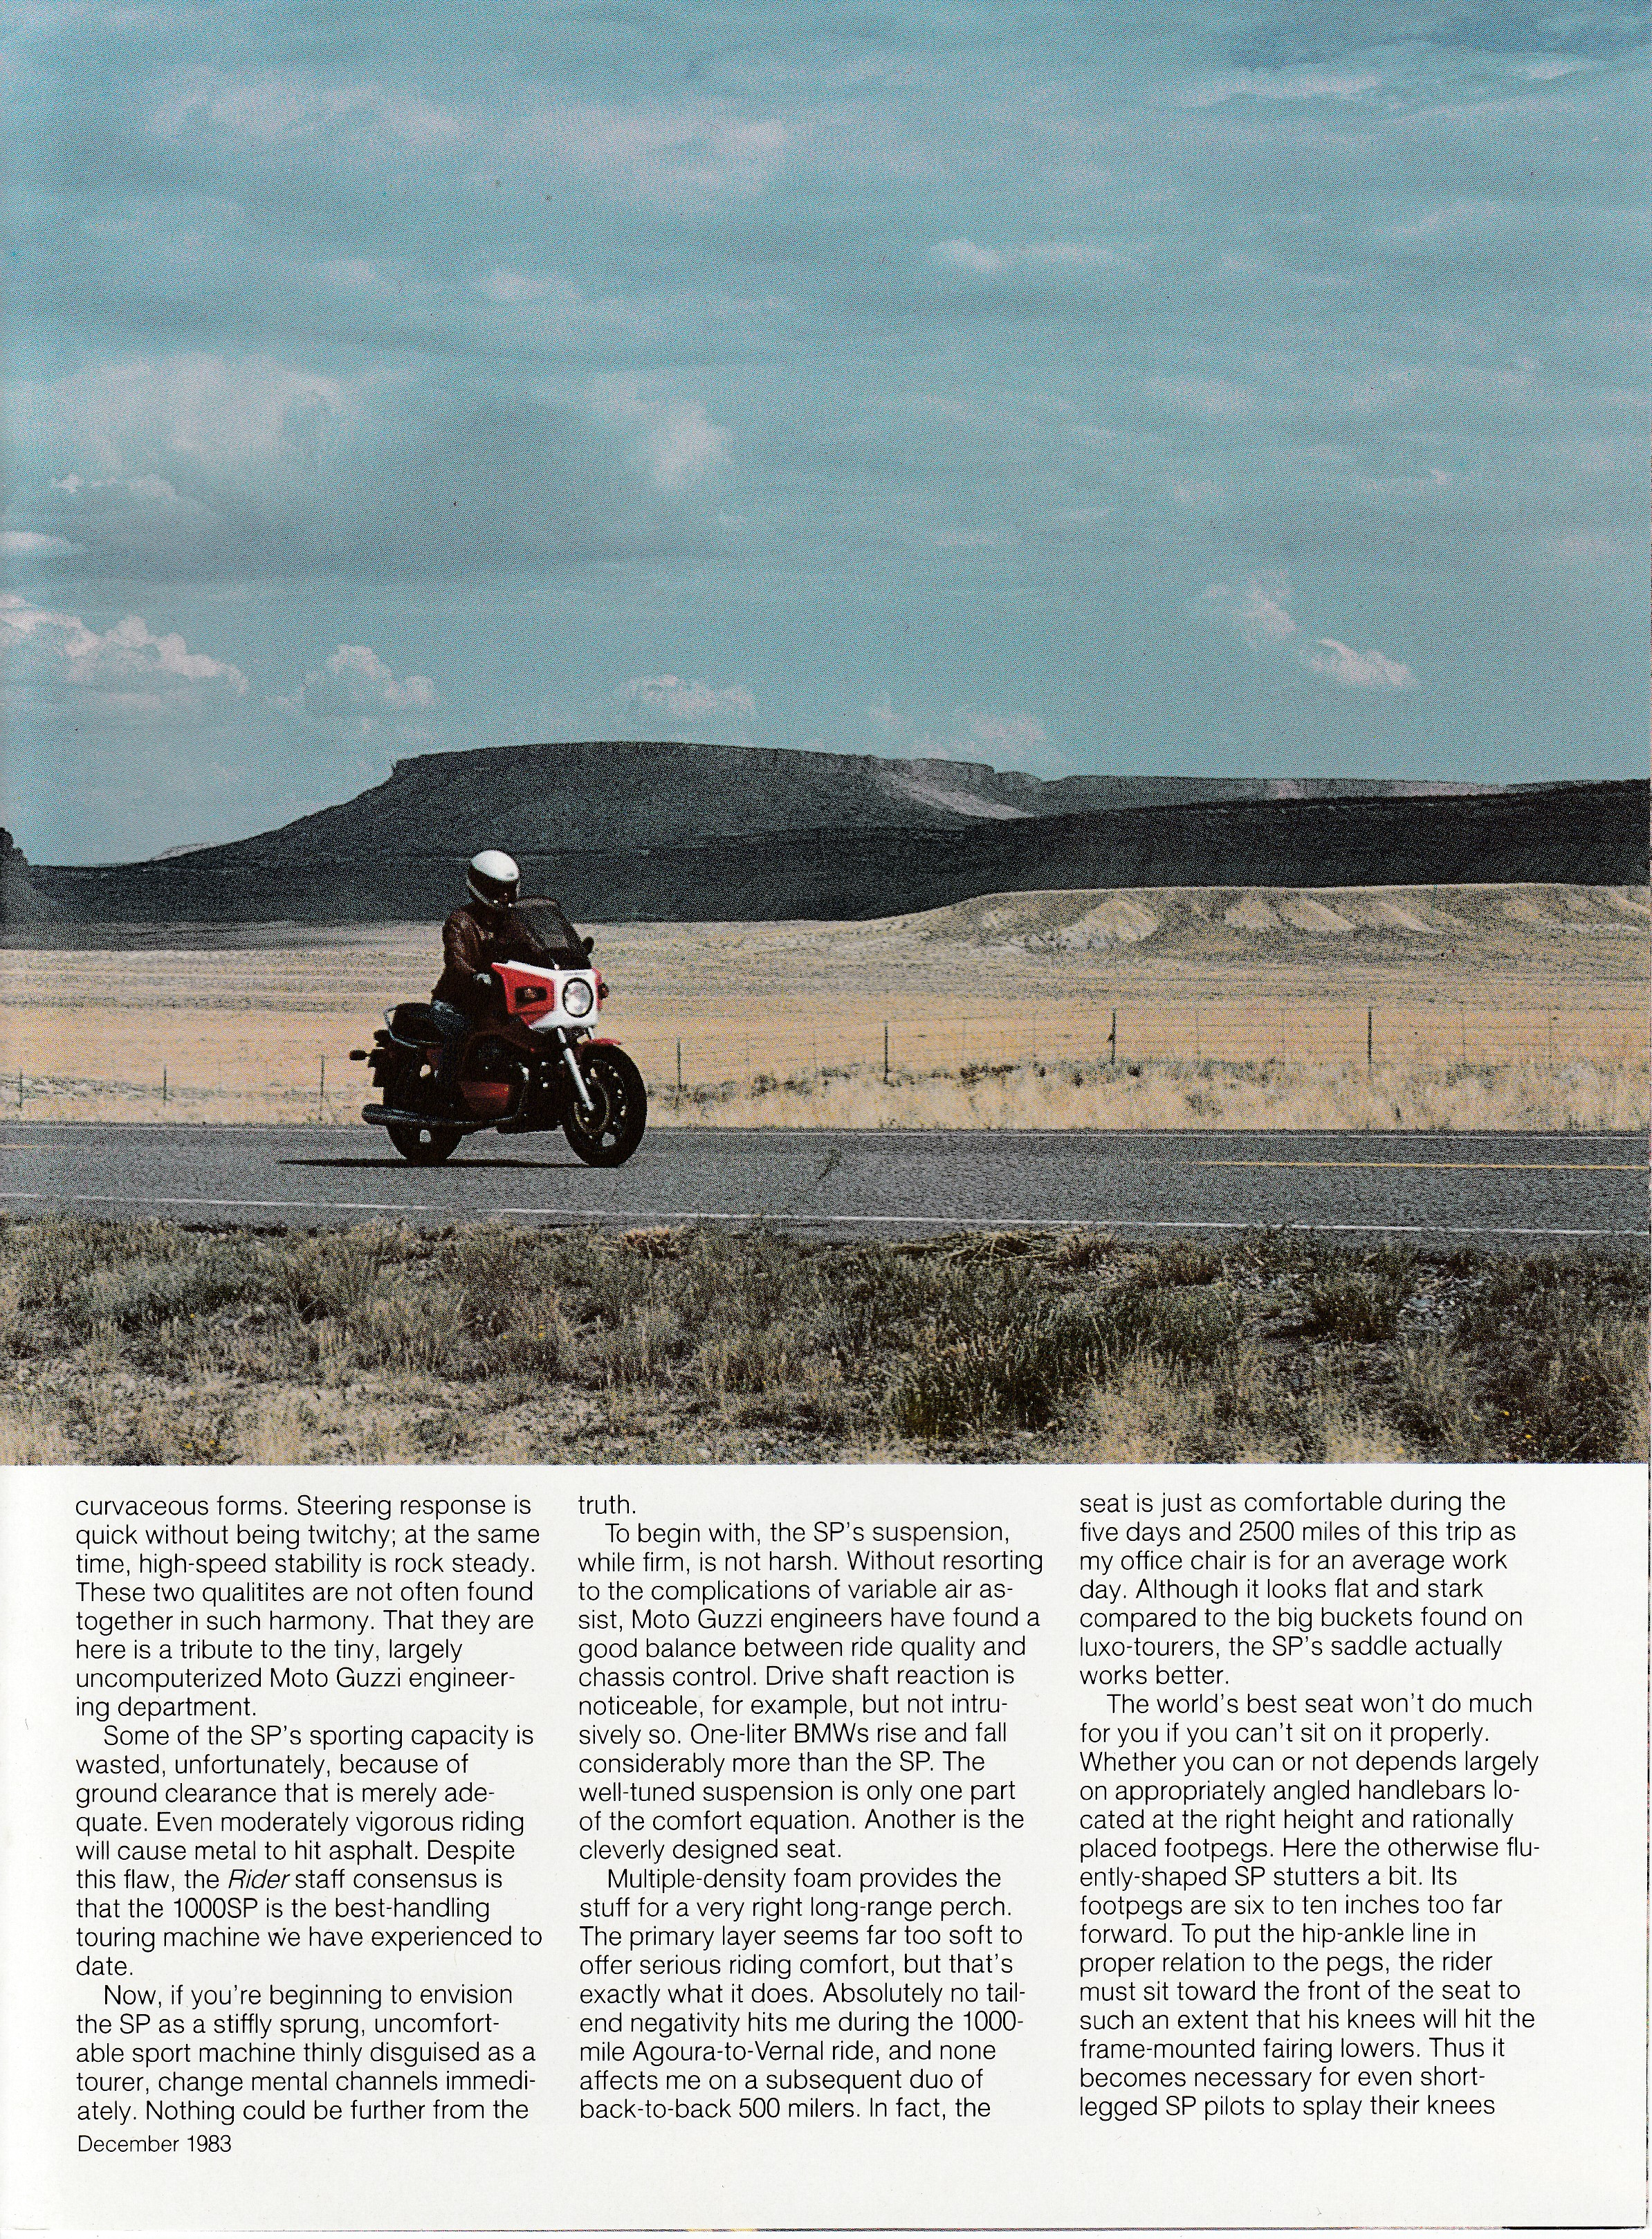 Article - Rider (1983 December) First test: Moto Guzzi 1000 SP bring on the curves